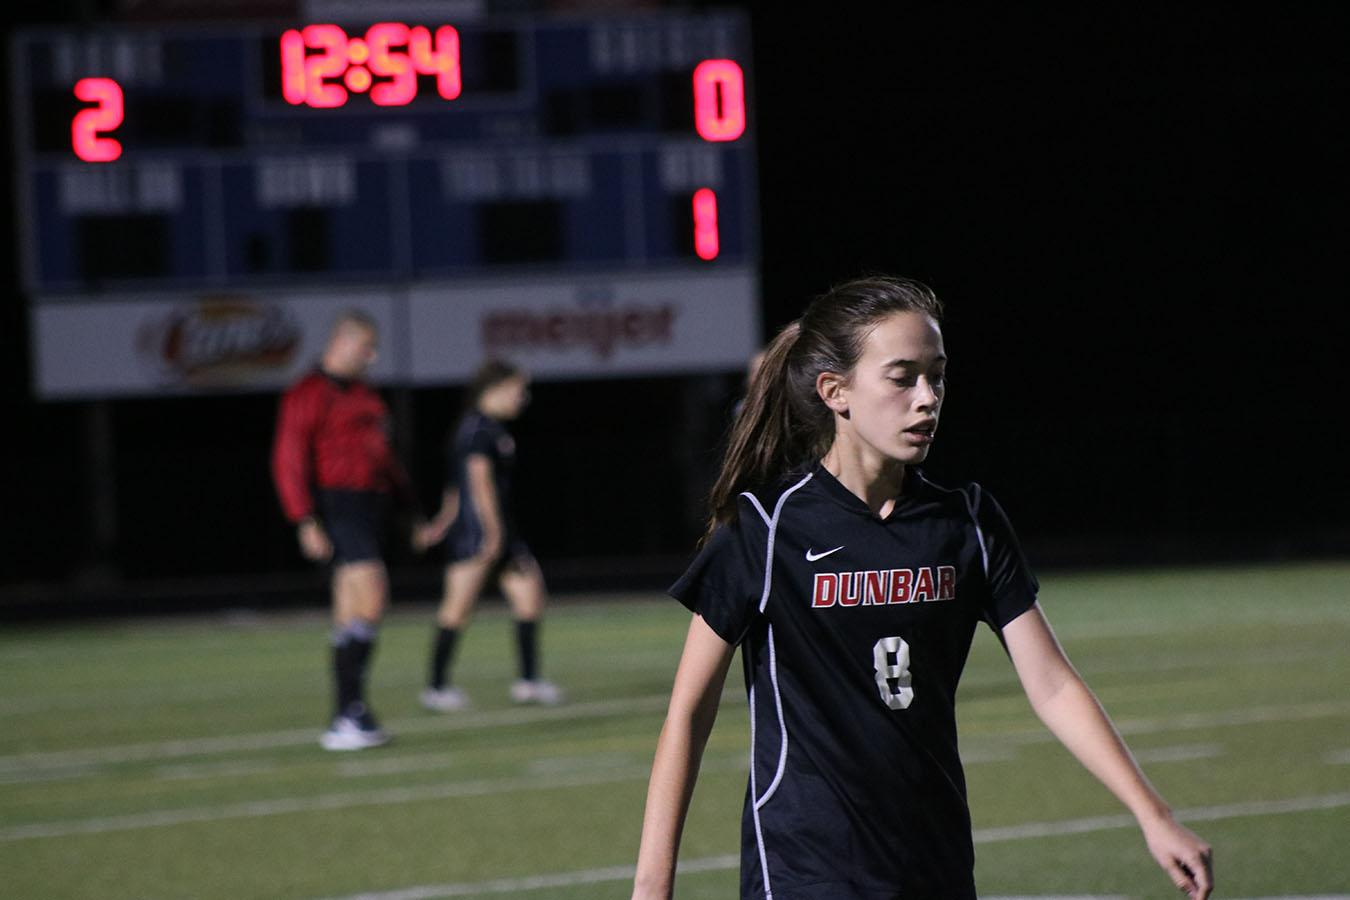 Girls' Soccer Districts